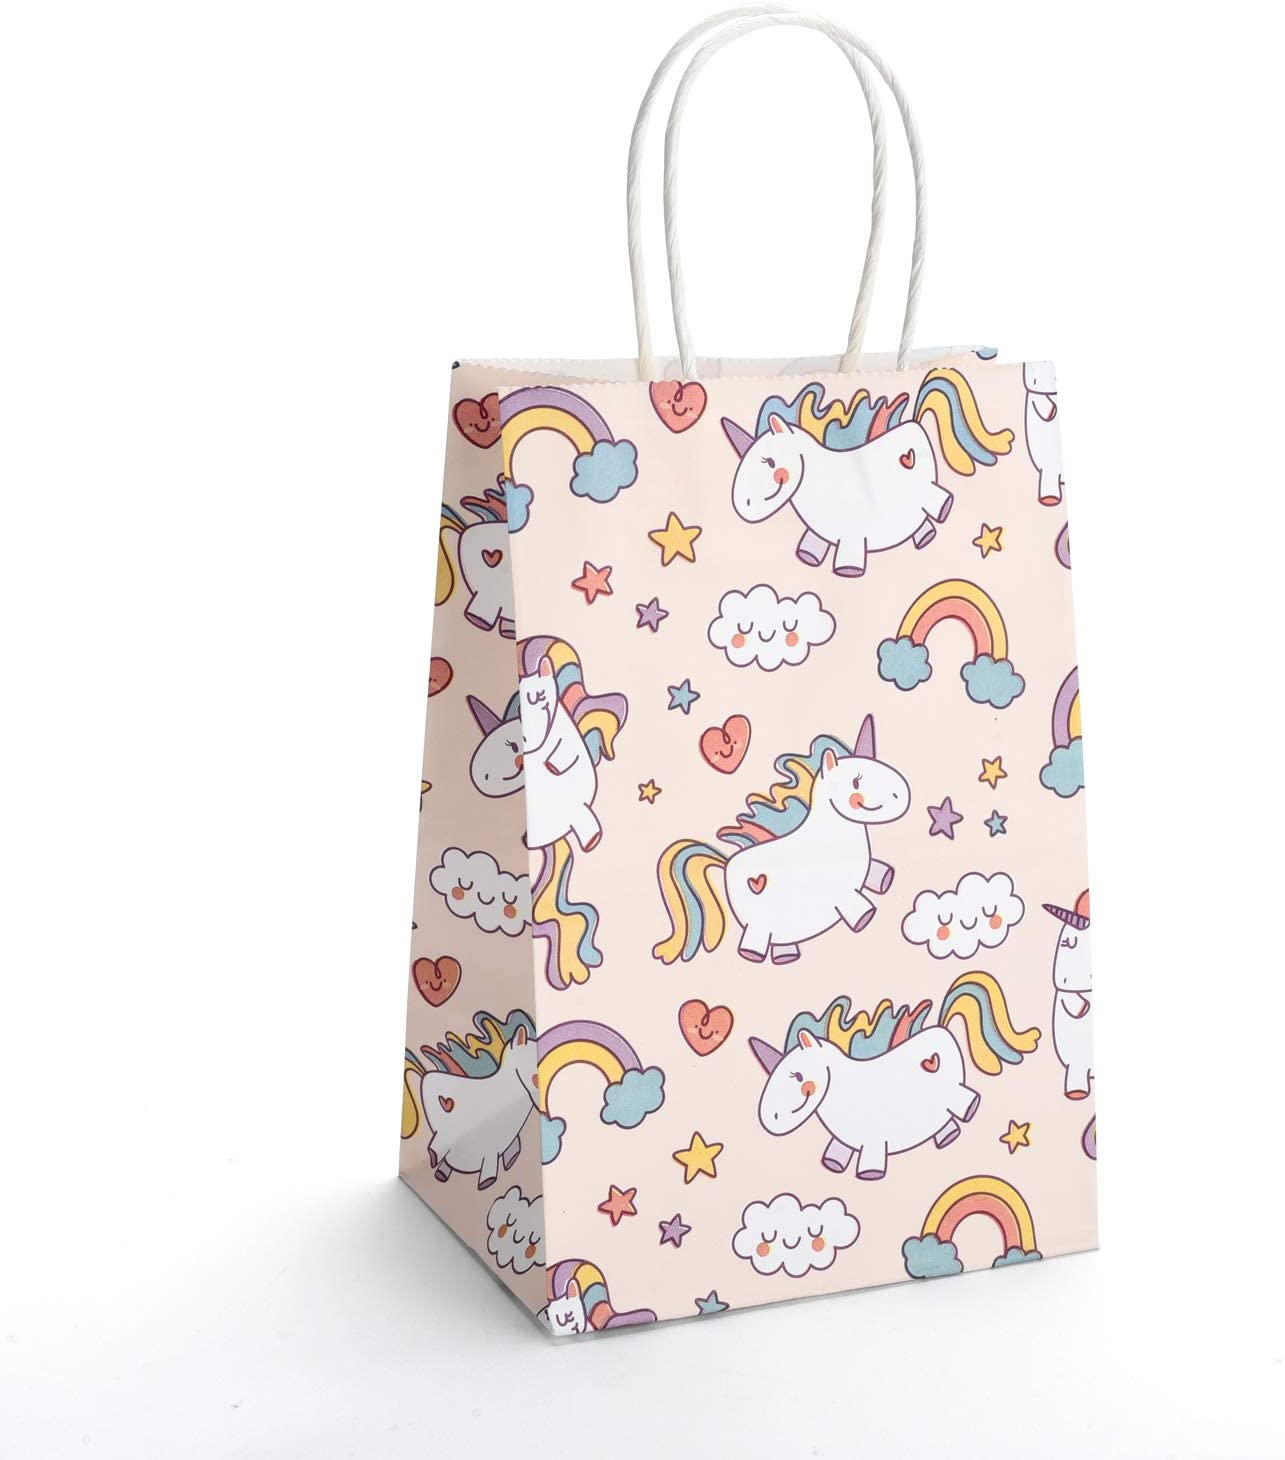 GSSUSA Small Gift Bags 5.25x3.75x8 20PACK Inches Paper Bags with Handles Party Bags Shopping Bags Kraft Bags Paper Bag with Unicorn Pattern 100% Recyclable